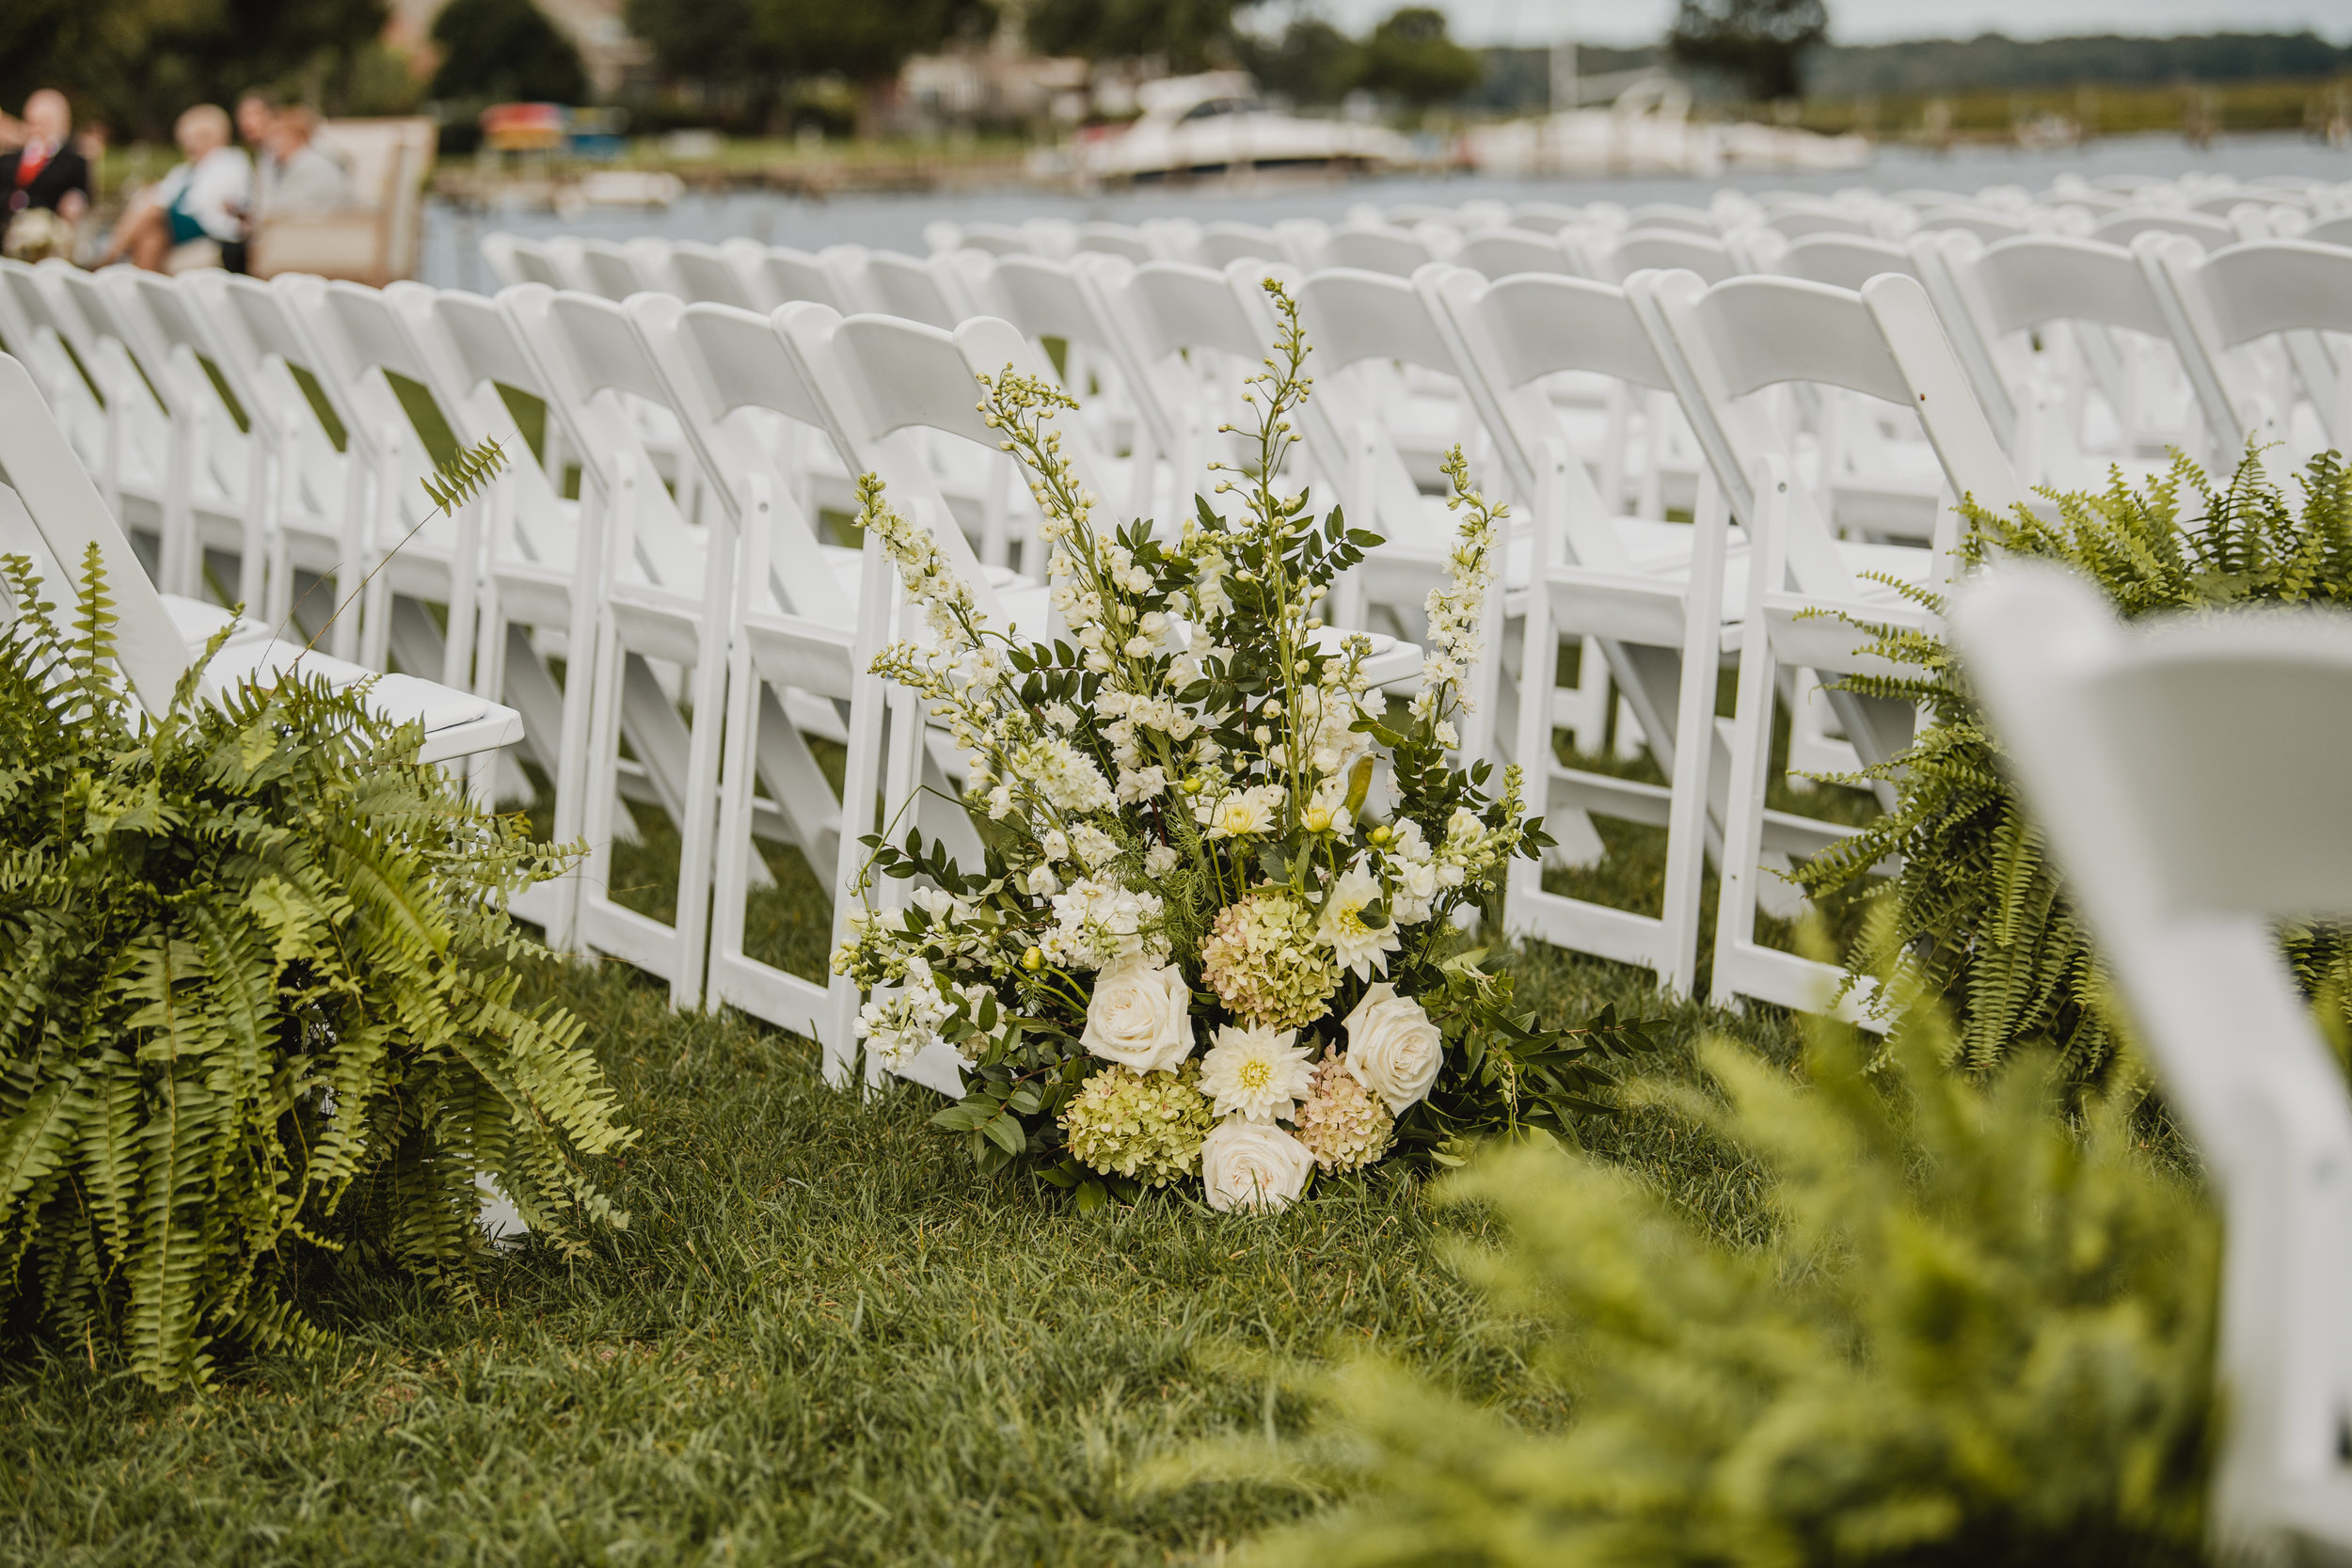 Inn at Perry Cabin Wedding, Aisle Decor, Moon Gate, Greenery, Aisle Urns, Maryland Wedding, A Garden Party, Tyler Boye Photography, Caroline Dutton Events, White Glove Rentals